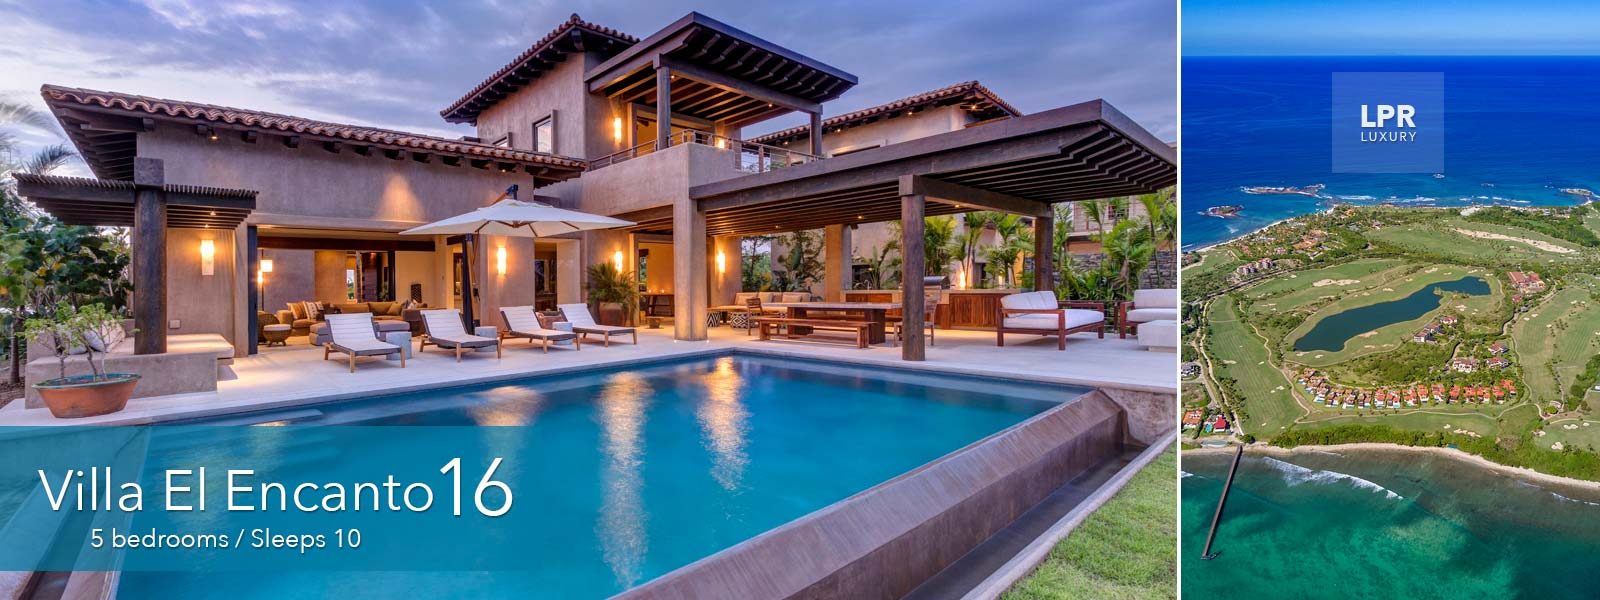 Villa El Encanto 16 - Luxury Real Estate for sale at the Punta Mita Resort, Mexico